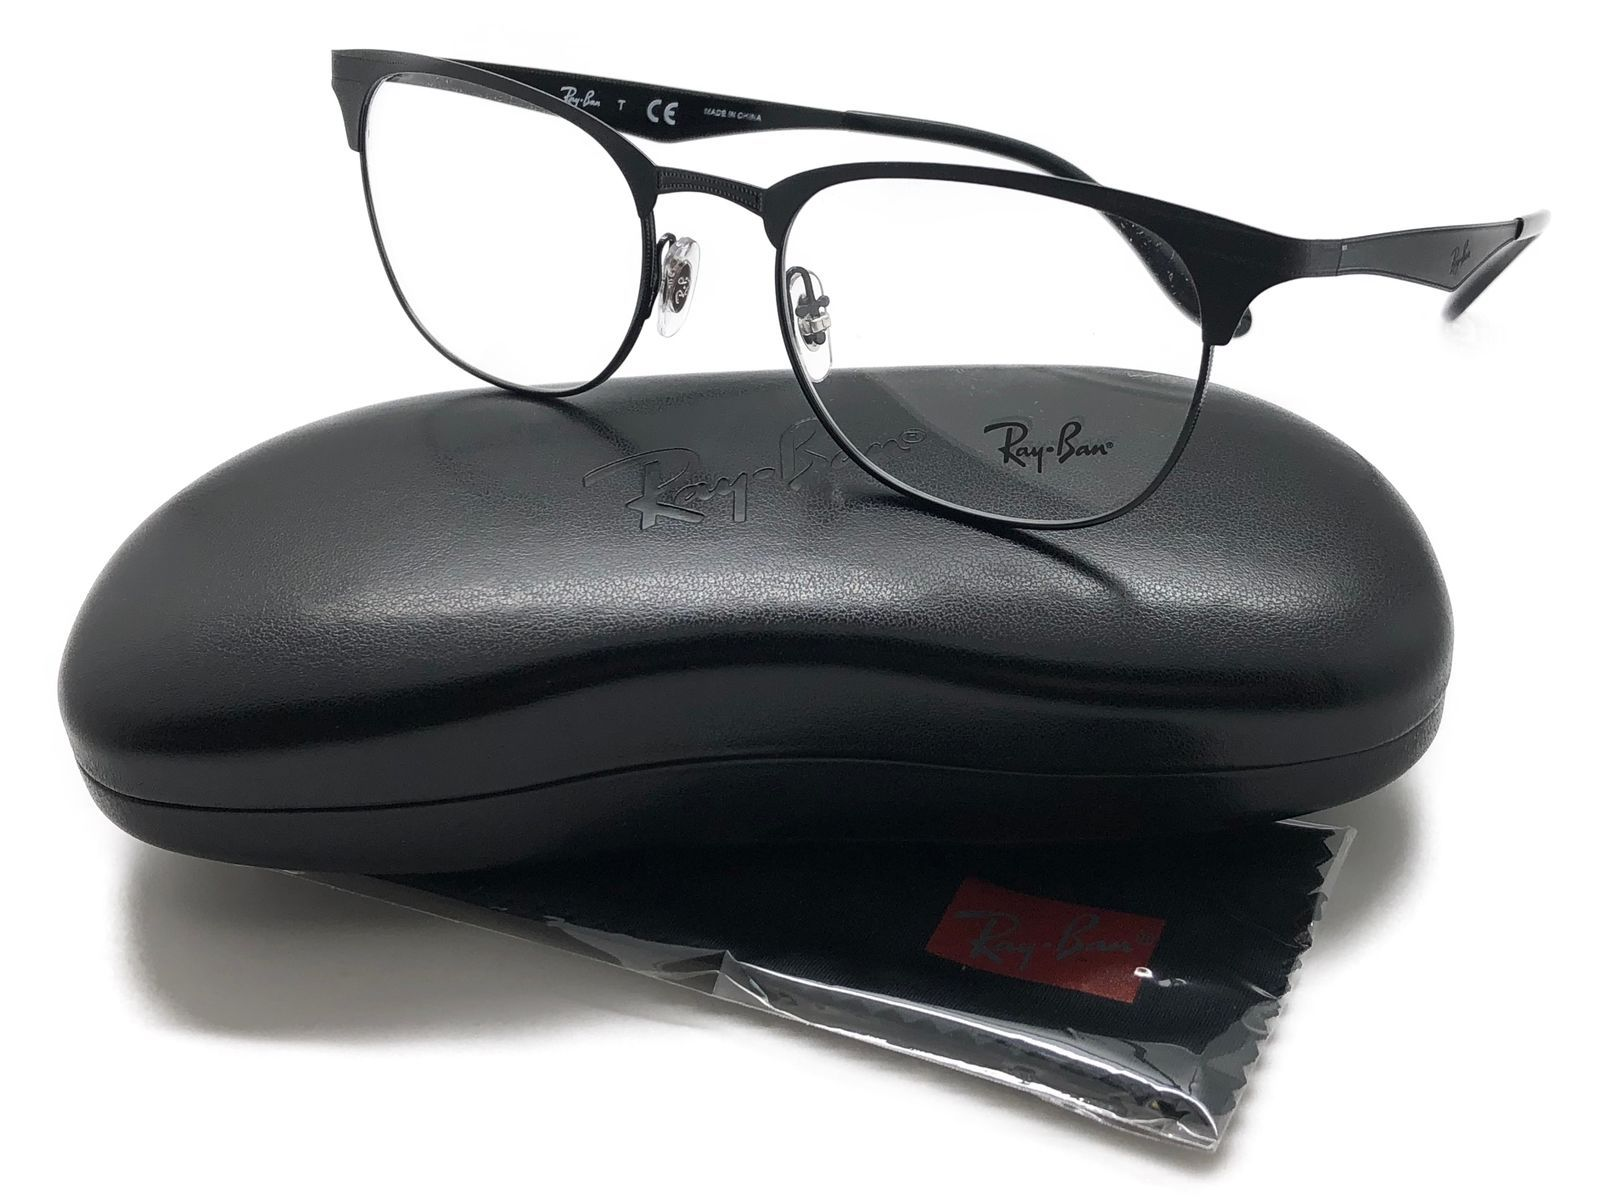 a479ac682a100 RAY-BAN Eyeglasses RB 6346 2904 52-19 145 and 50 similar items